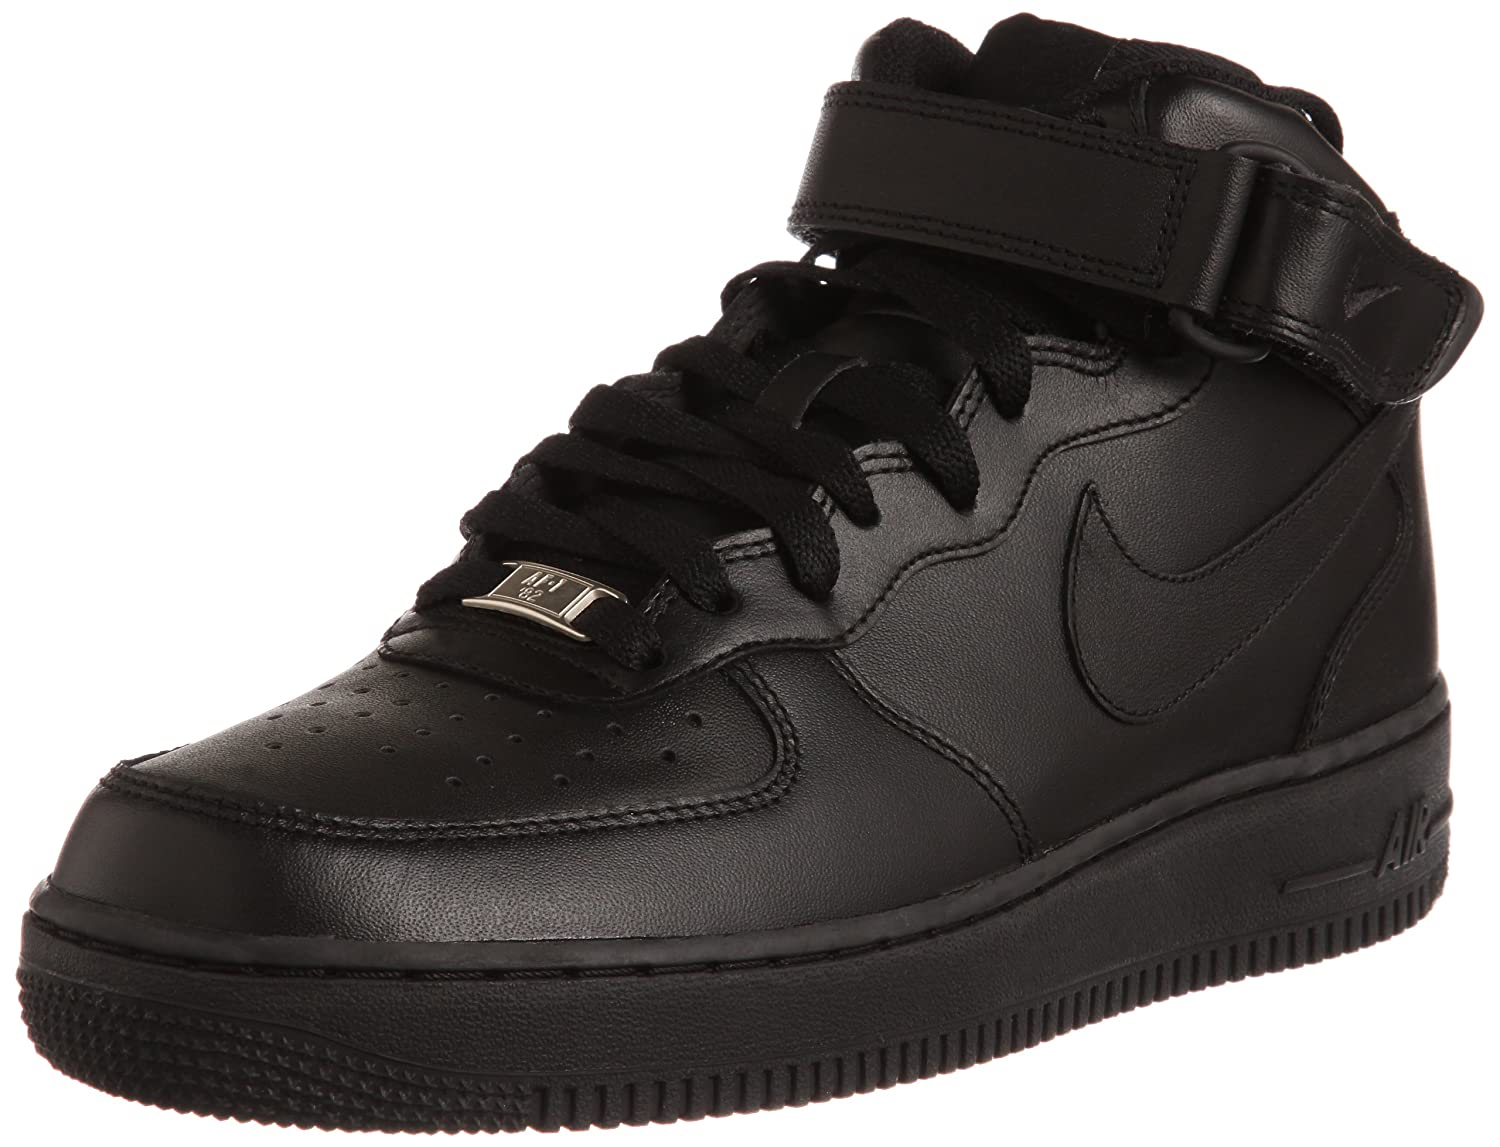 Nike Air Force 1 Mid '07 Men's B00N342XZ0 9 D(M) US|Black/Black-black